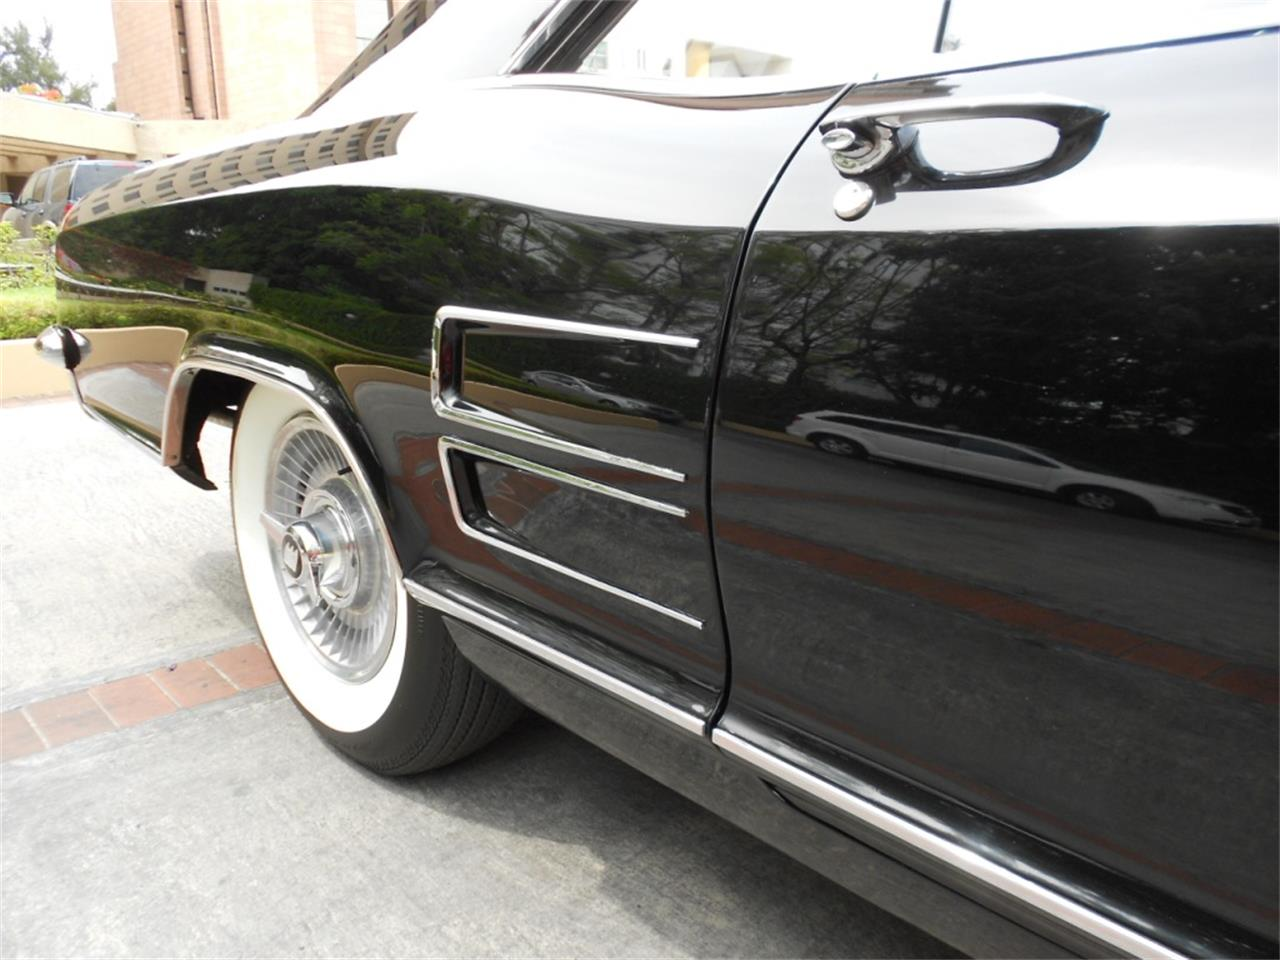 Large Picture of '63 Buick Riviera located in Texas - $25,000.00 - Q8L8